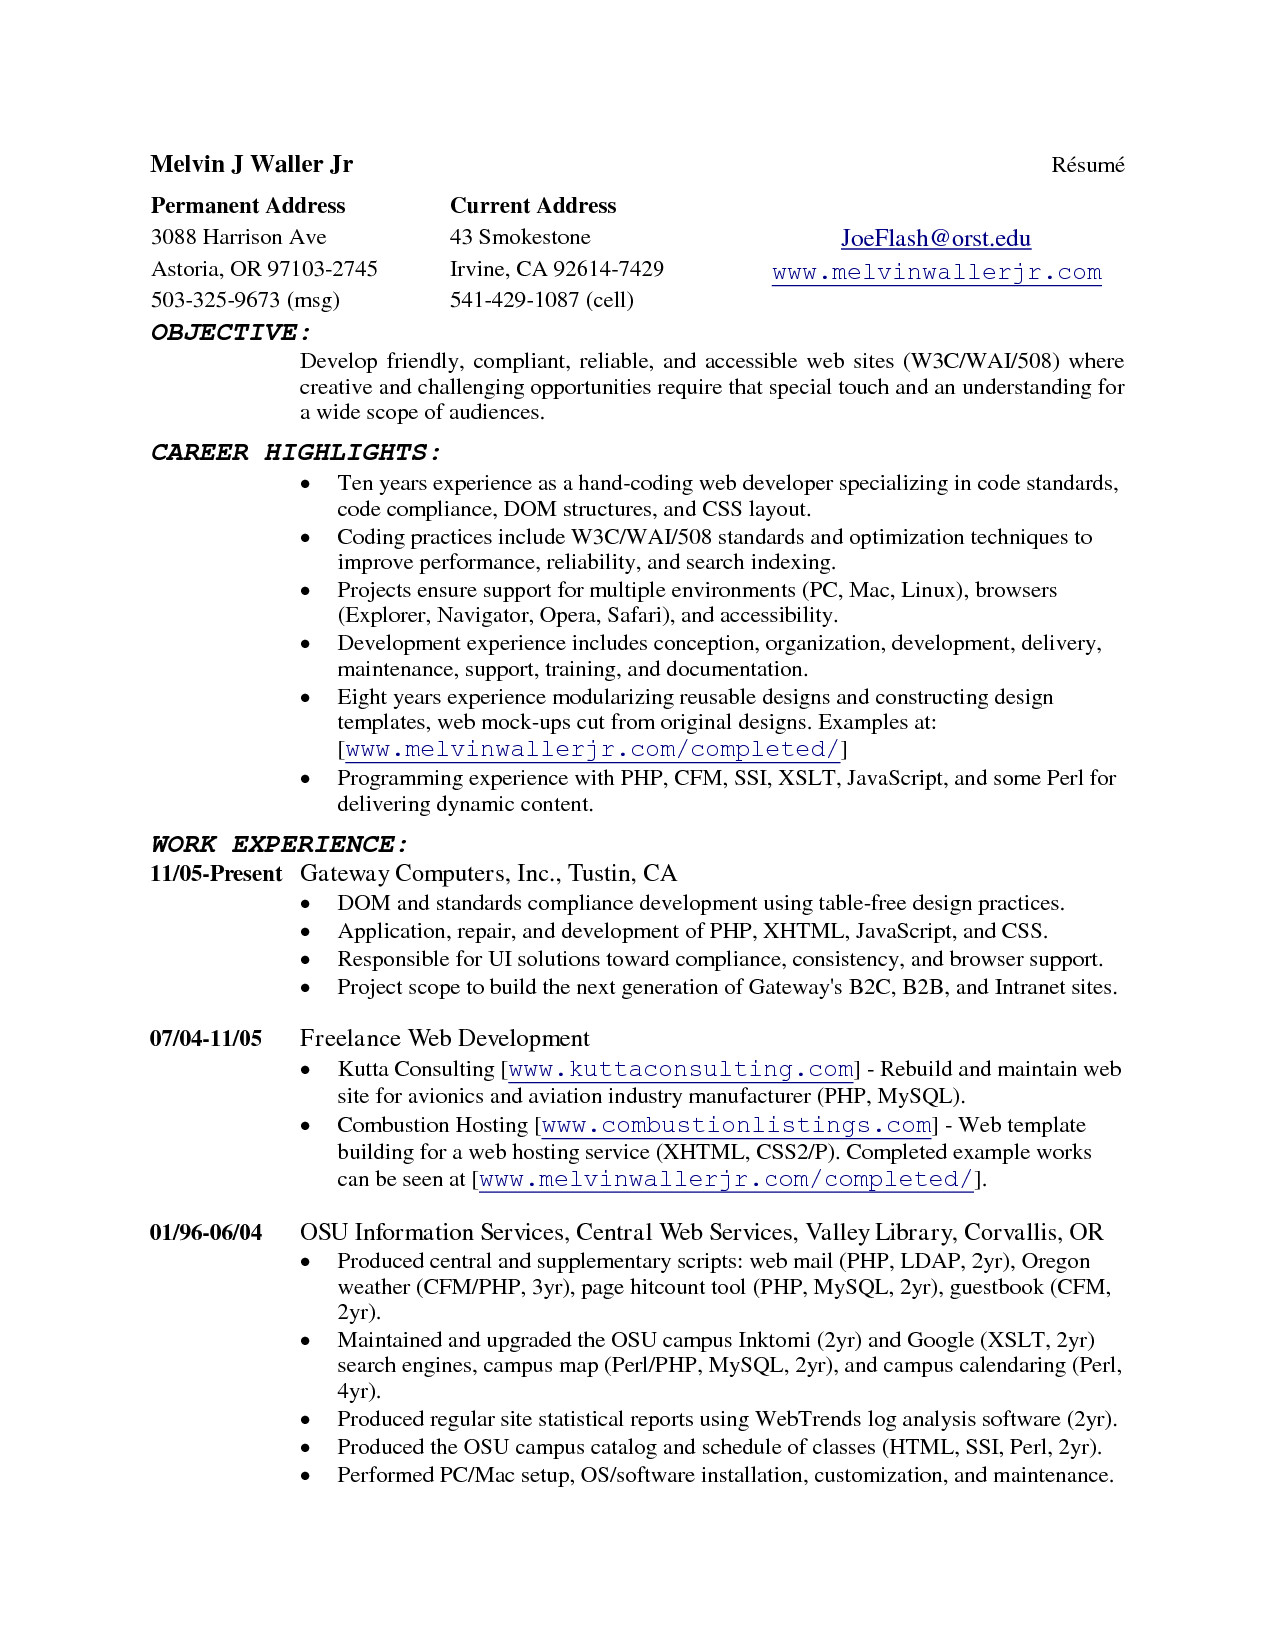 Customer Service Cover Letter Template Download - Writer Resume Template Financial Services Resume Template New Hr